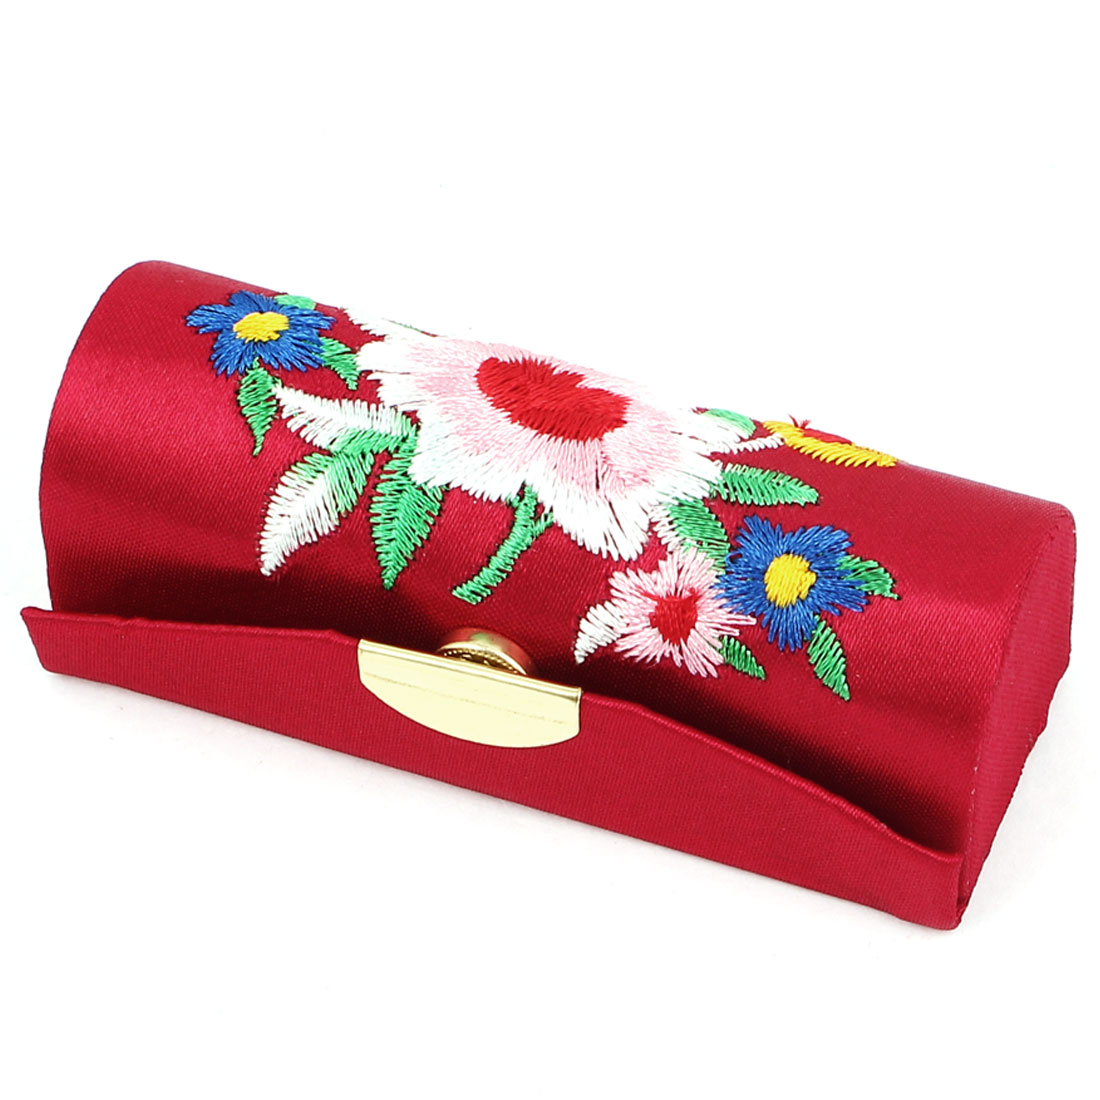 Lady Floral Embroidery Press Stud Closure Lipstick Lip Balm Stick Case Container Holder Burgundy